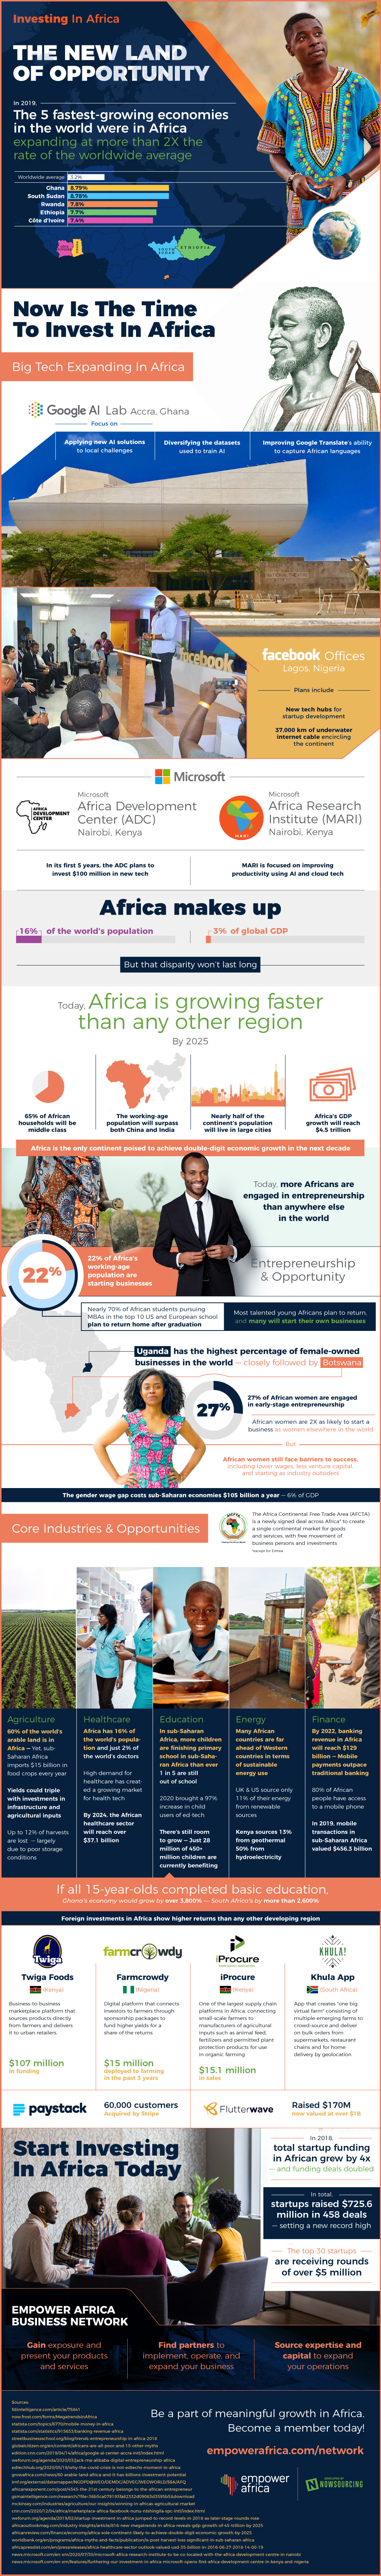 Investing In Africa Infographic